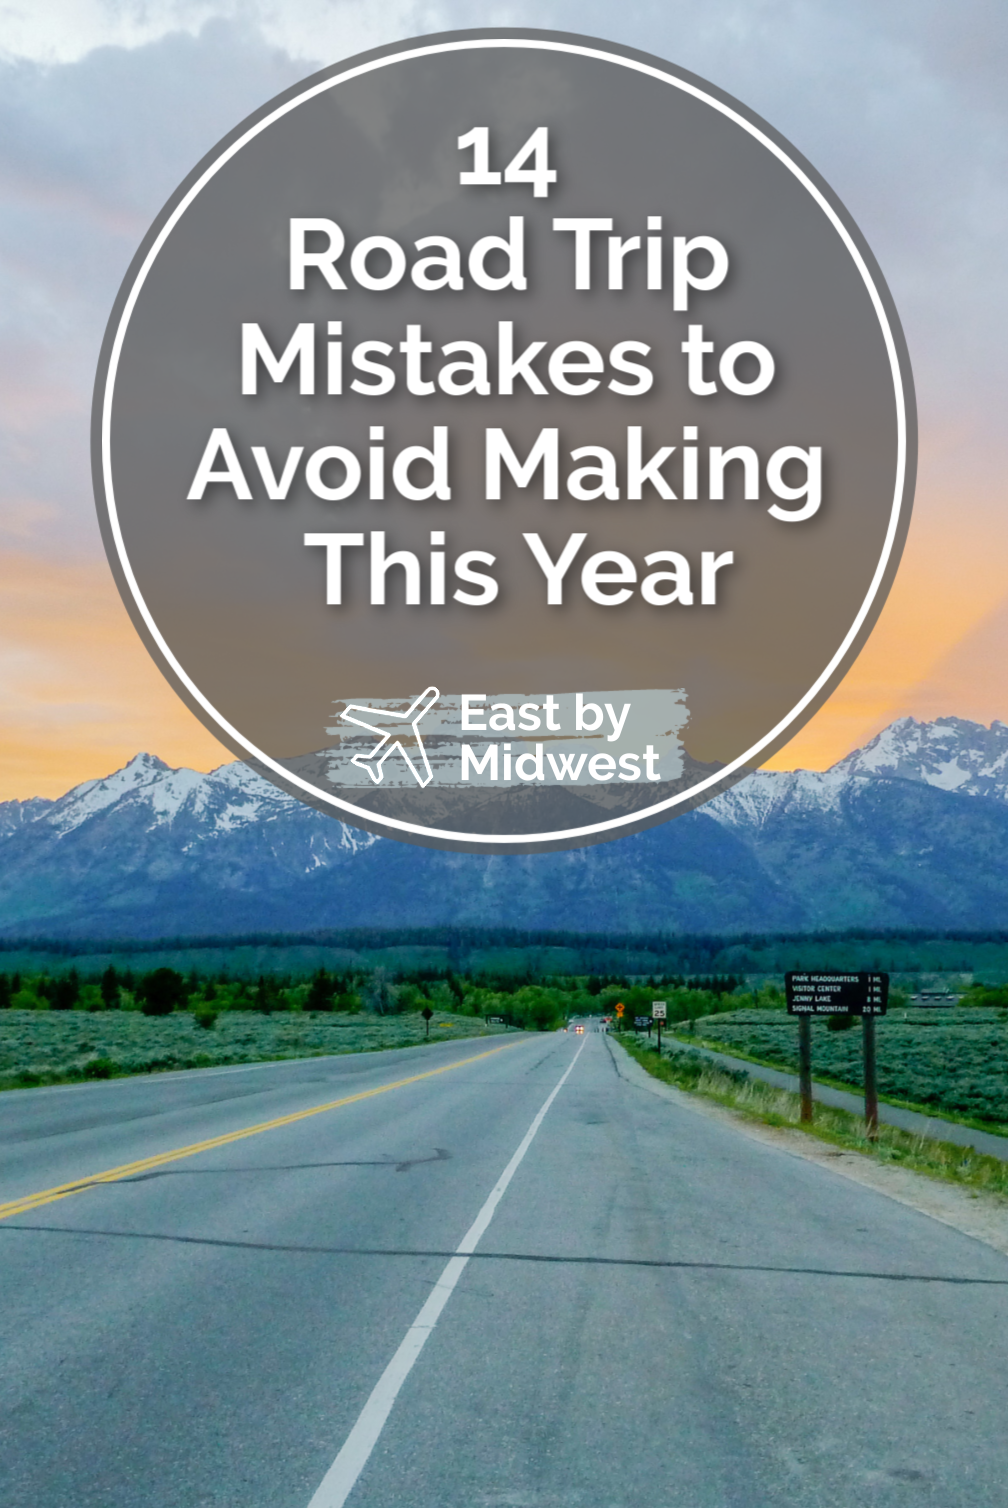 14 Road Trip Mistakes to Avoid Making This Year